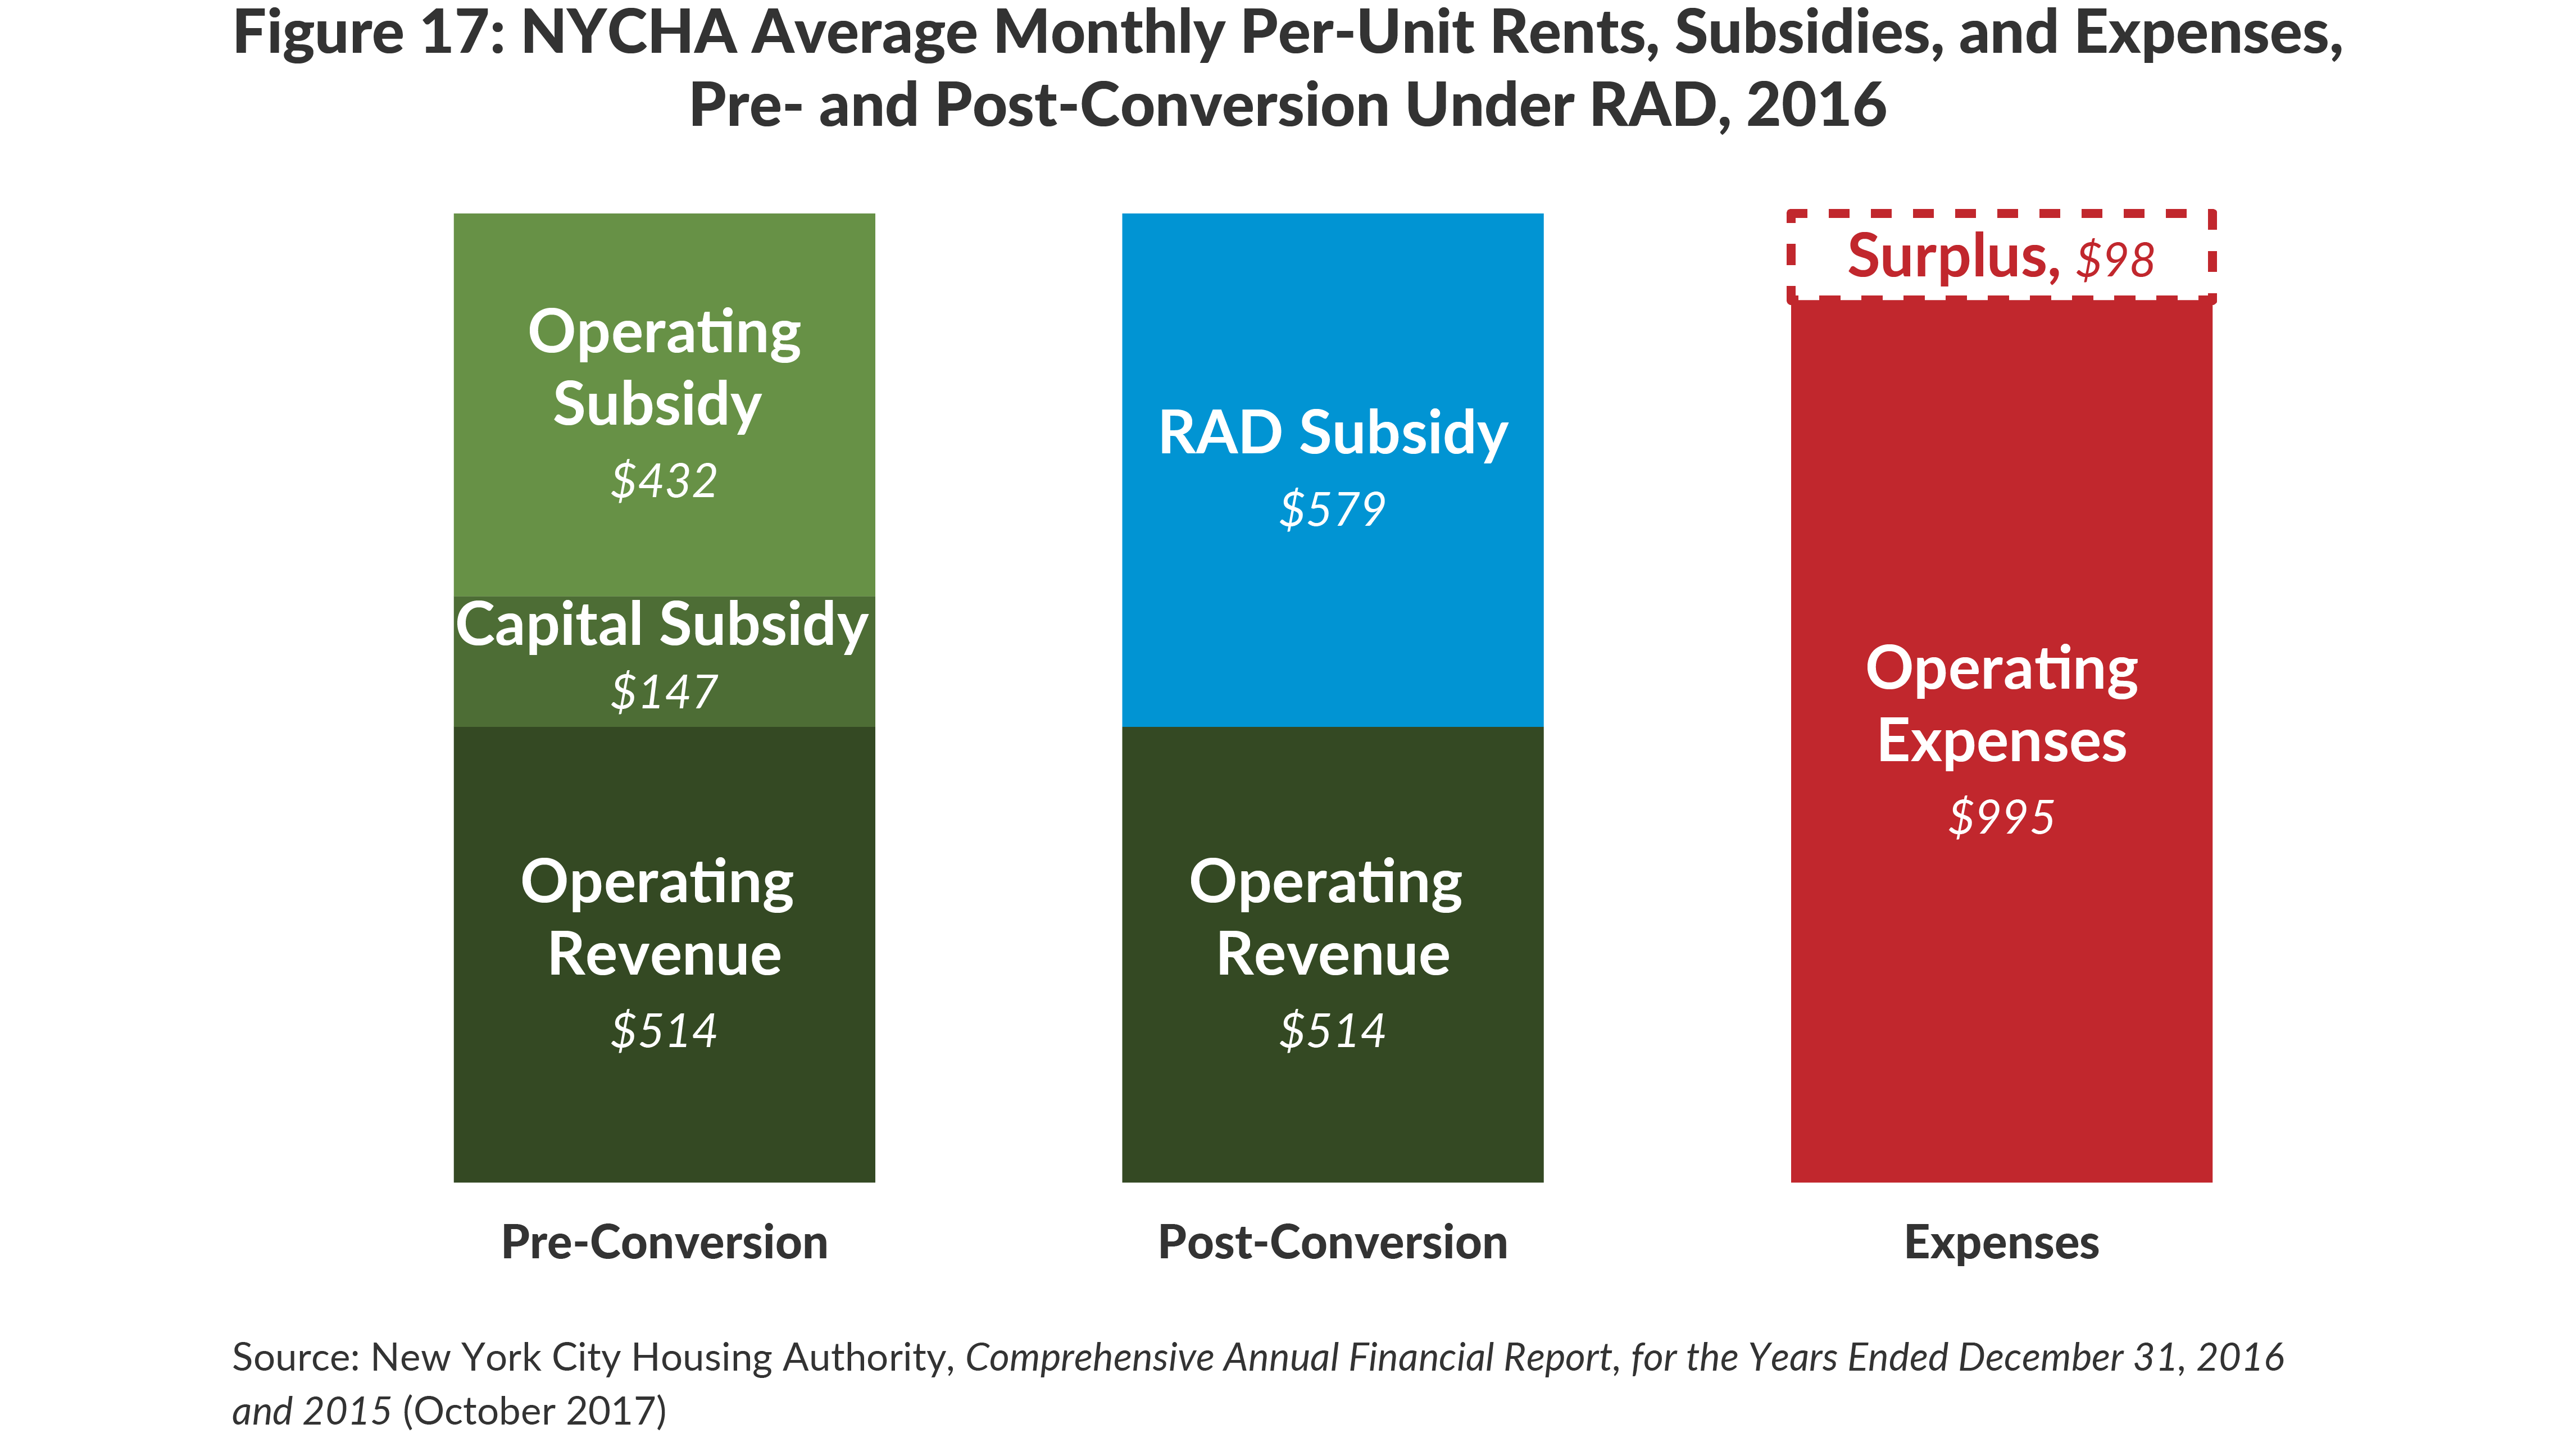 Figure 17: NYCHA Average Monthly Per-Unit Rents, Subsidies, and Expenses,Pre- and Post-Conversion Under RAD, 2016